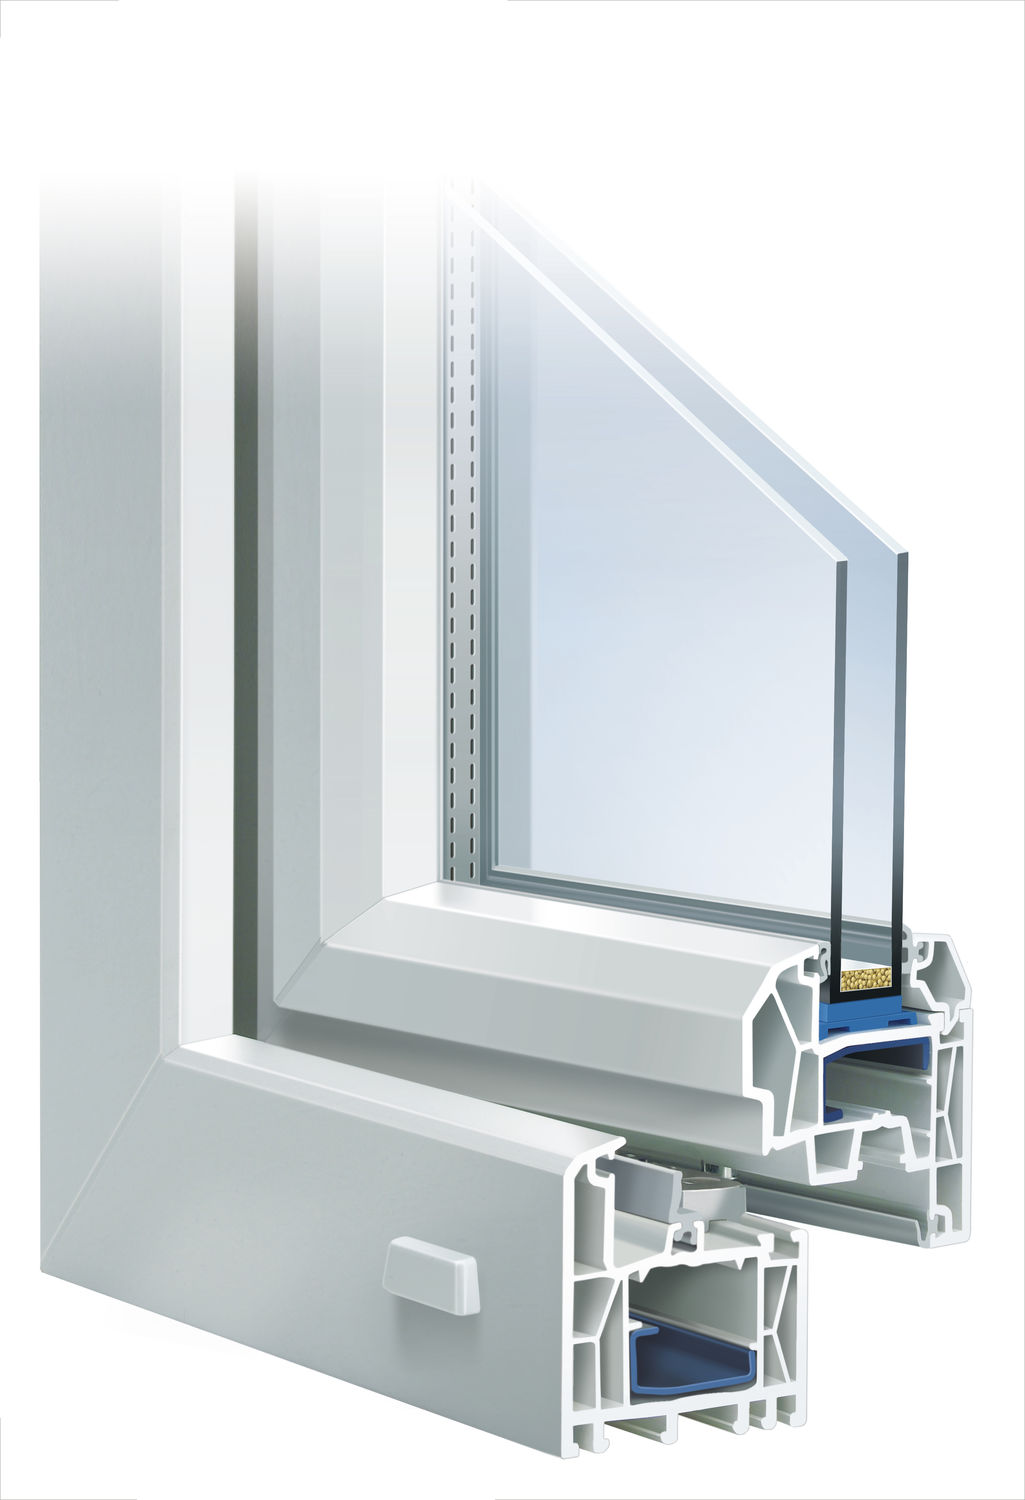 Casement window / PVC / double-glazed / thermal break - INNONOVA_70